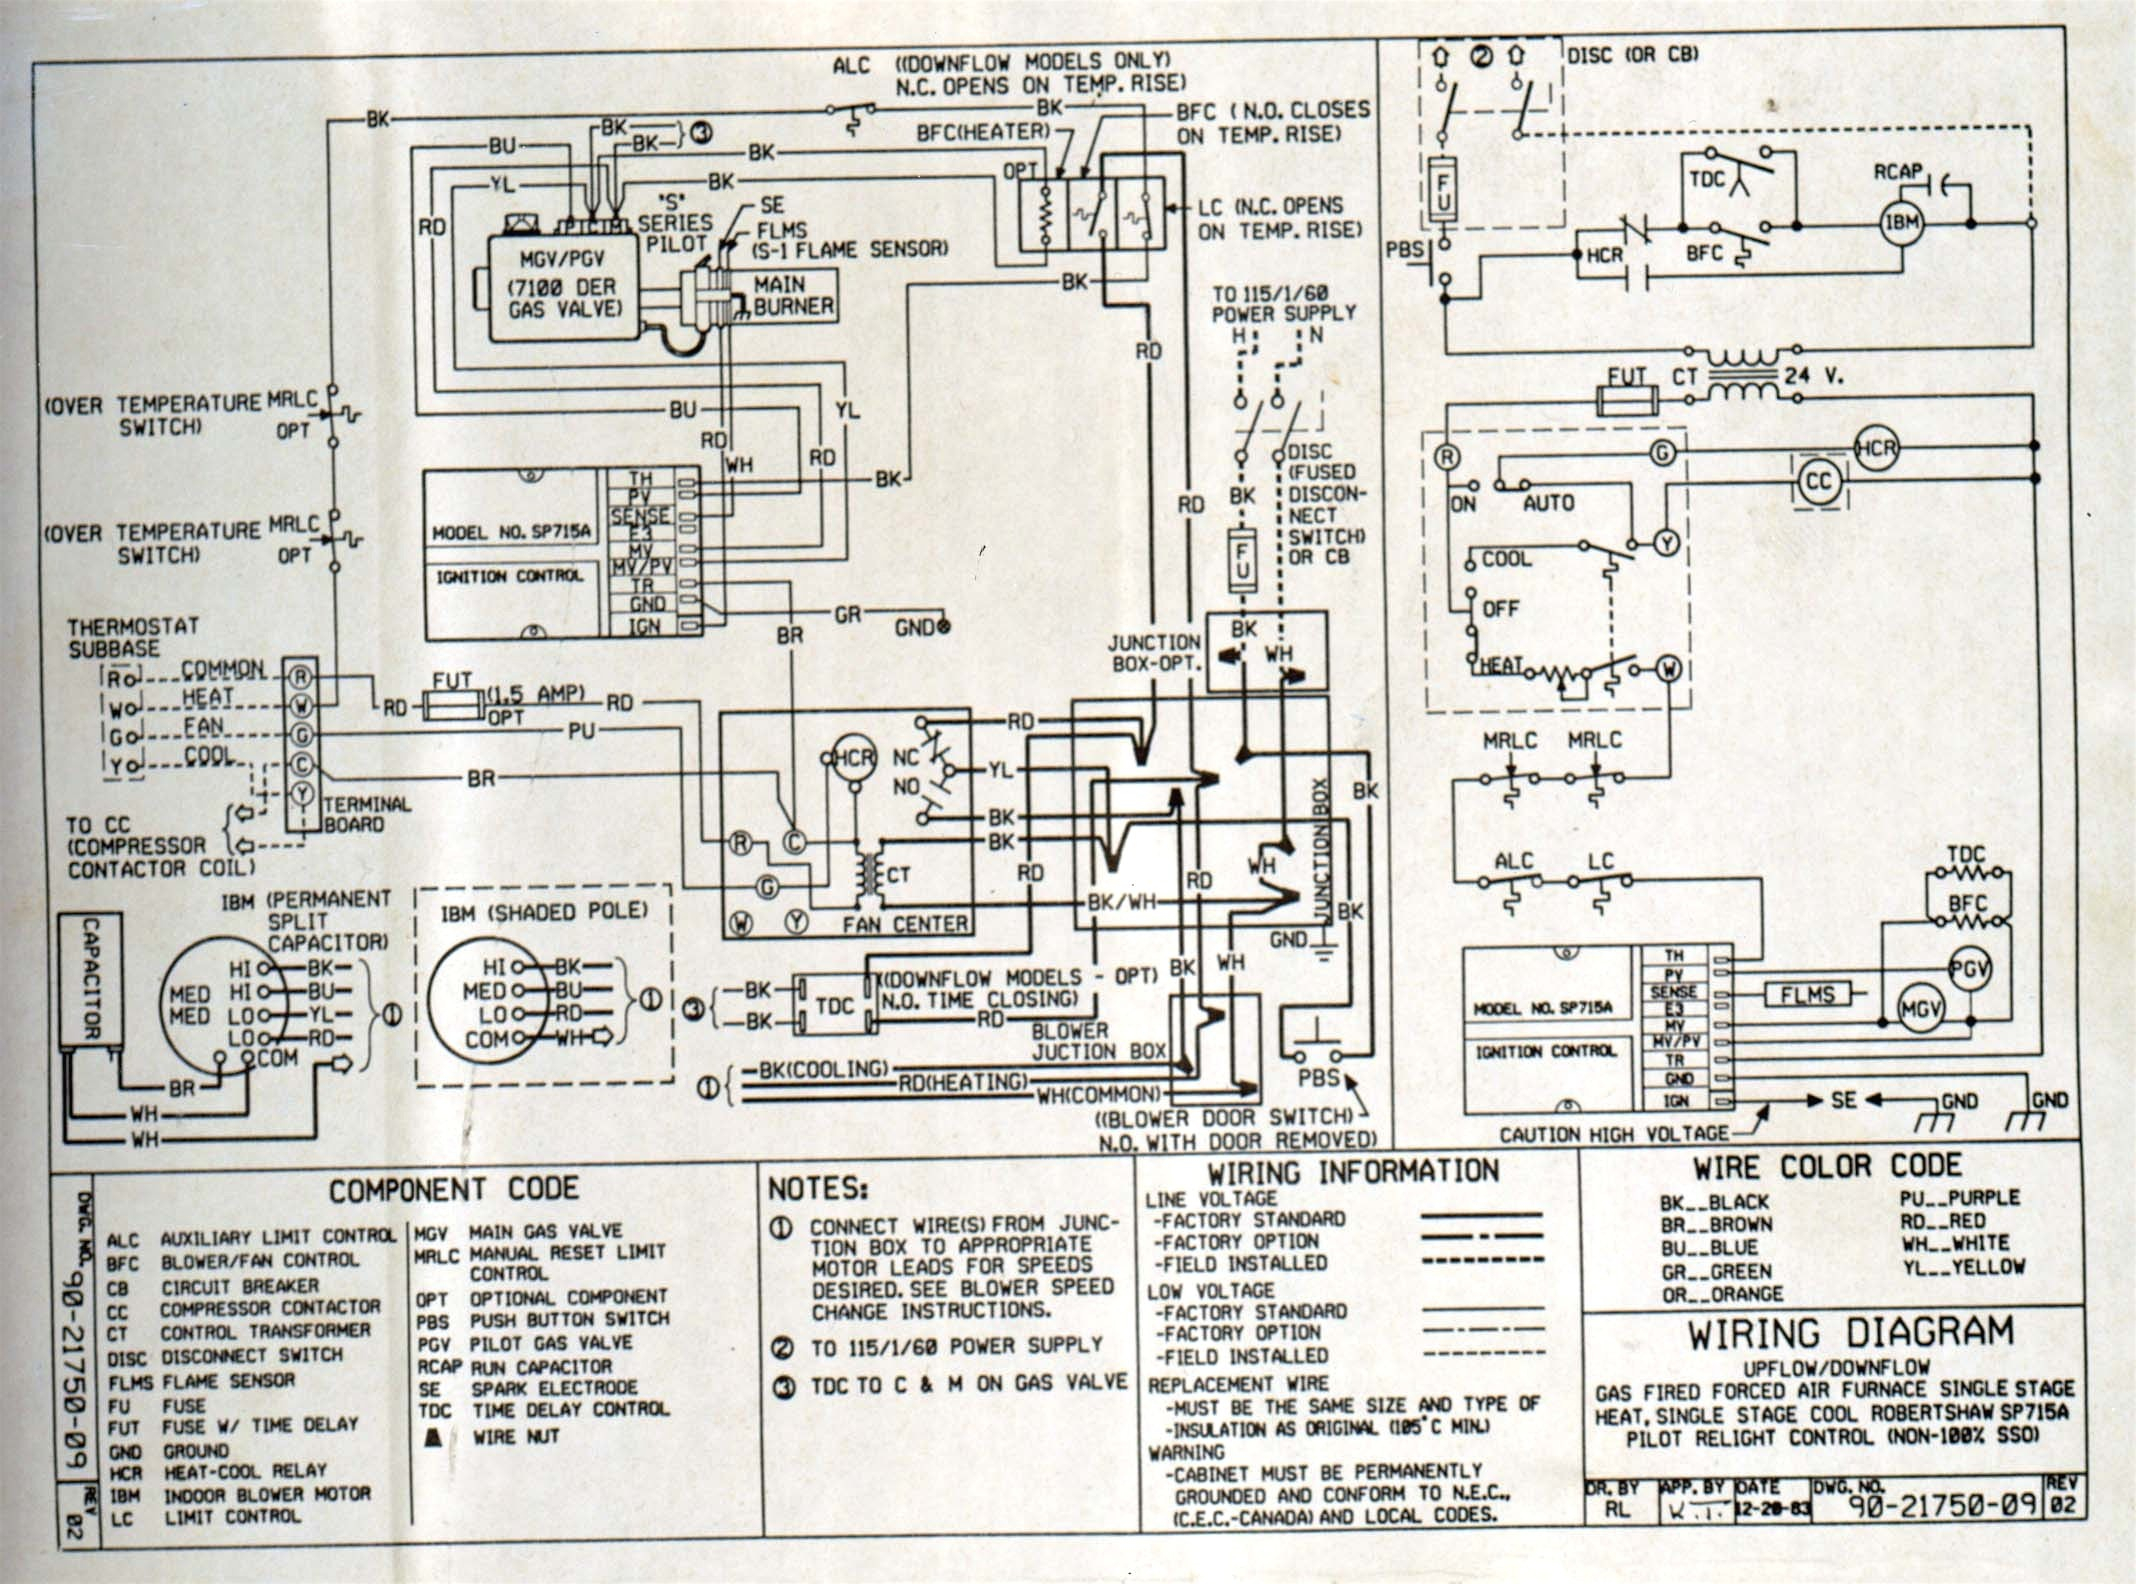 goodman furnace wiring diagram Download-Payne Electric Furnace Wiring Diagram Inspirationa Payne Air Handler Wiring Diagram In Image Goodman Electric Lovely 6-d